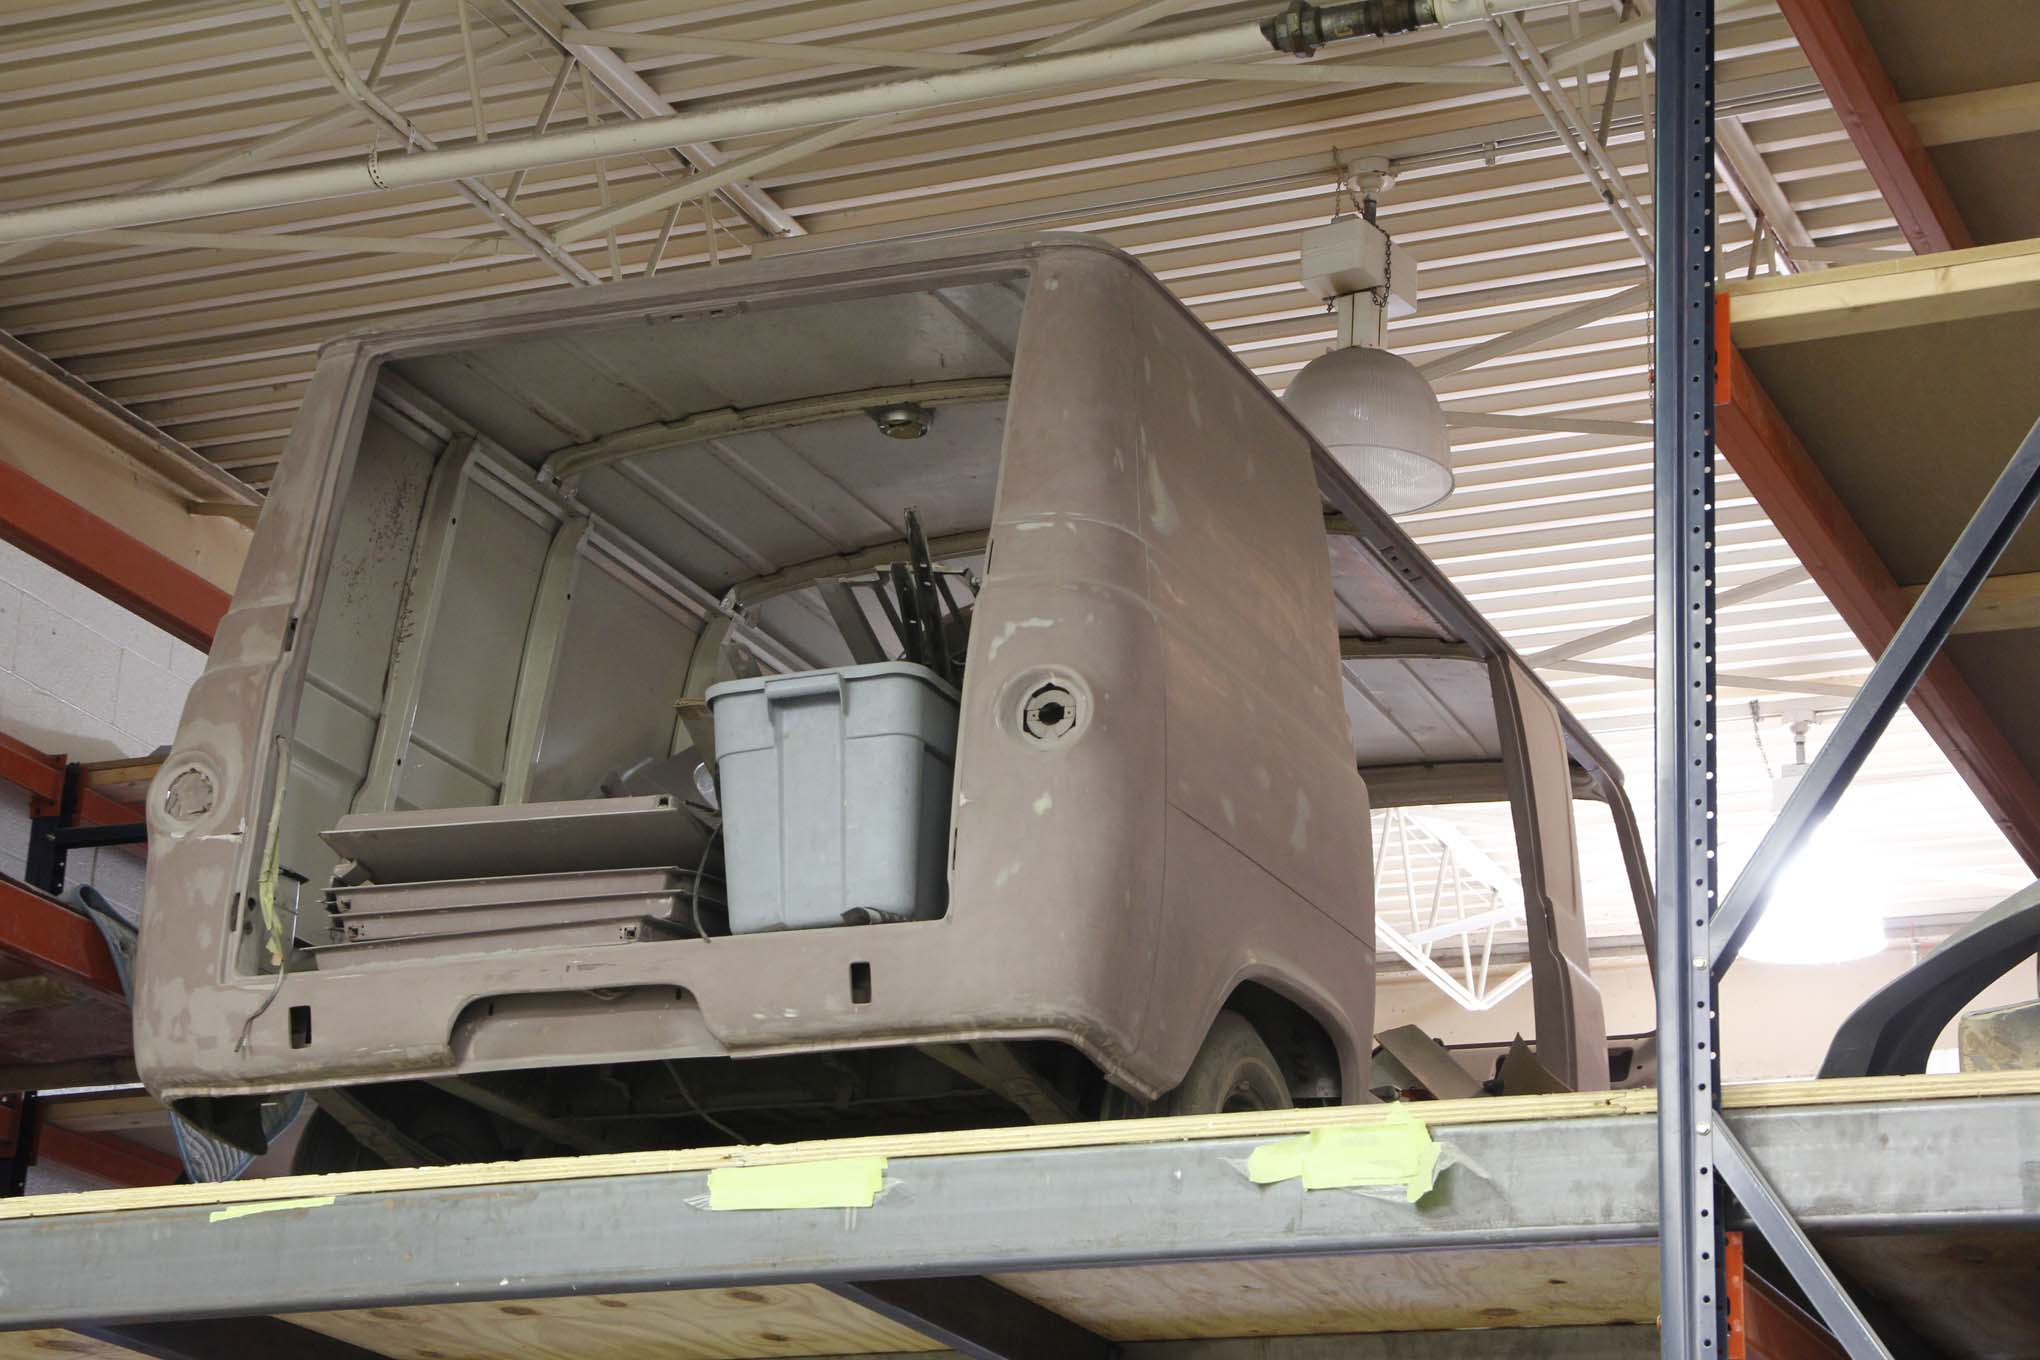 And there are vans! This Econoline is being stashed for a later build.